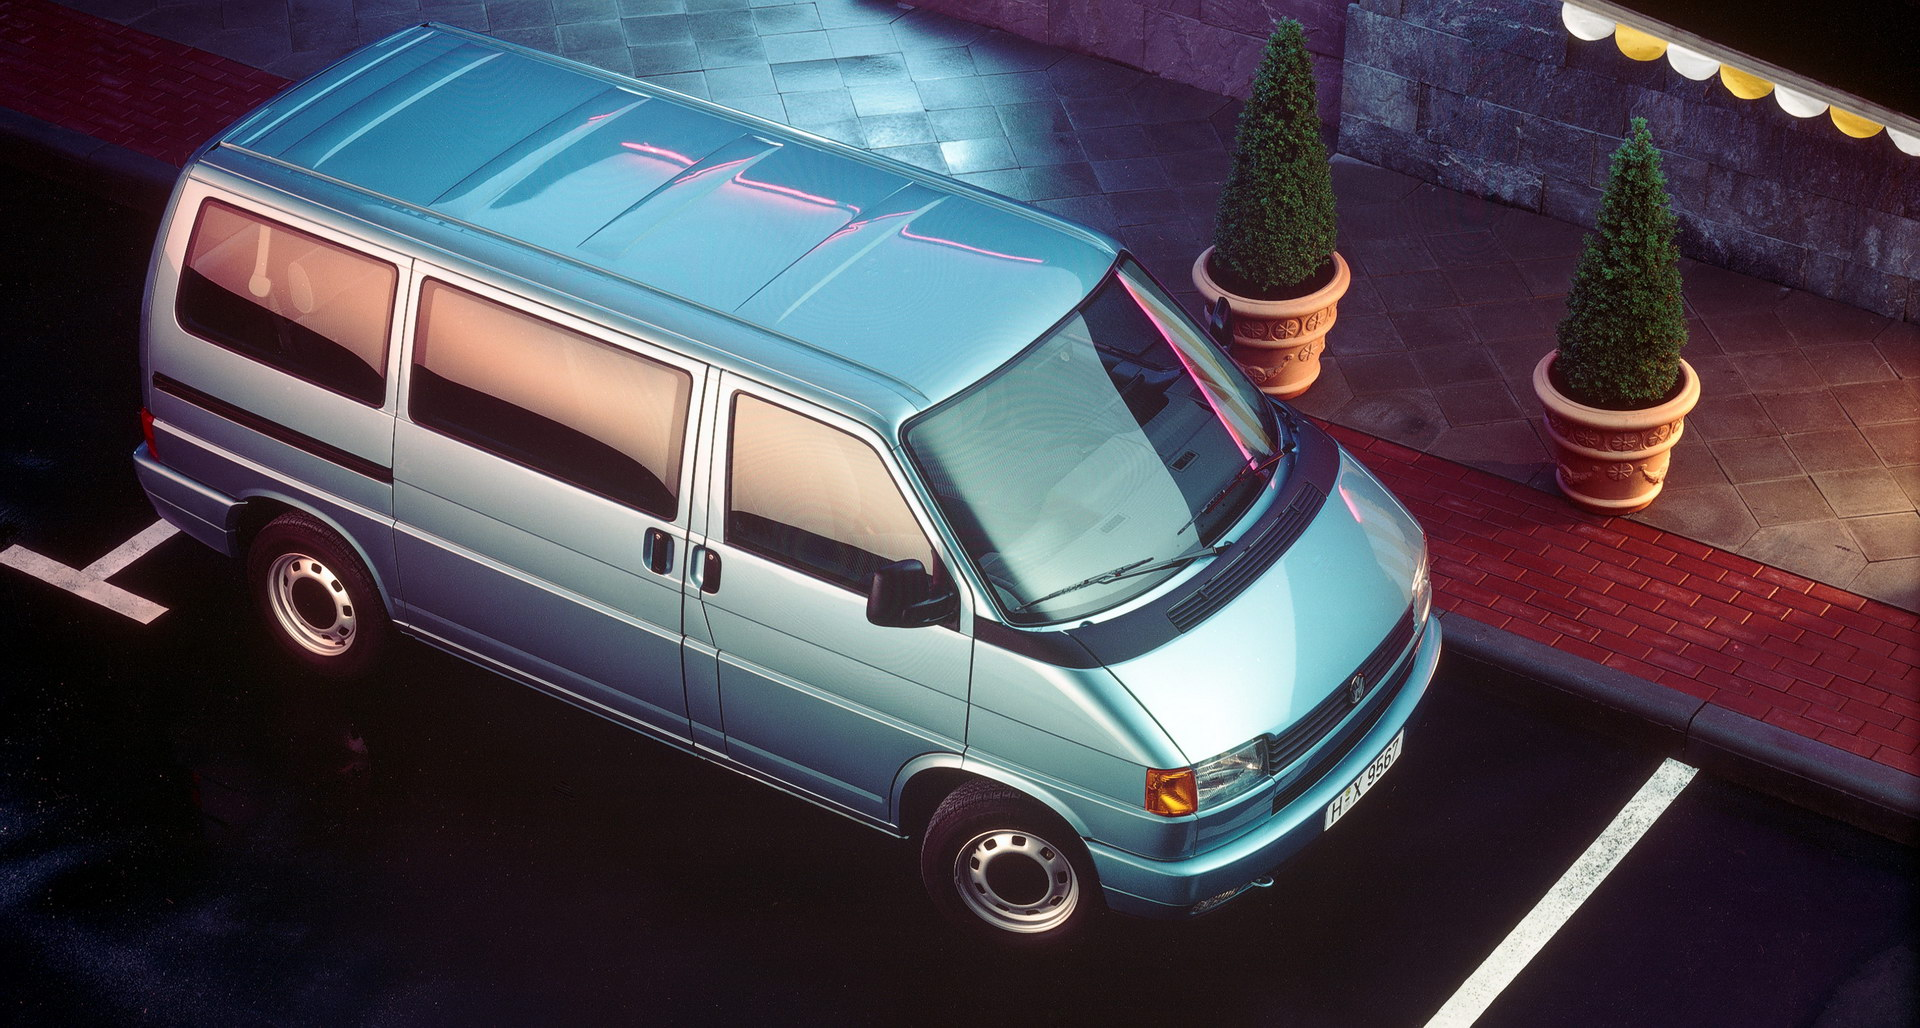 The new T4 Caravelle from 1990.